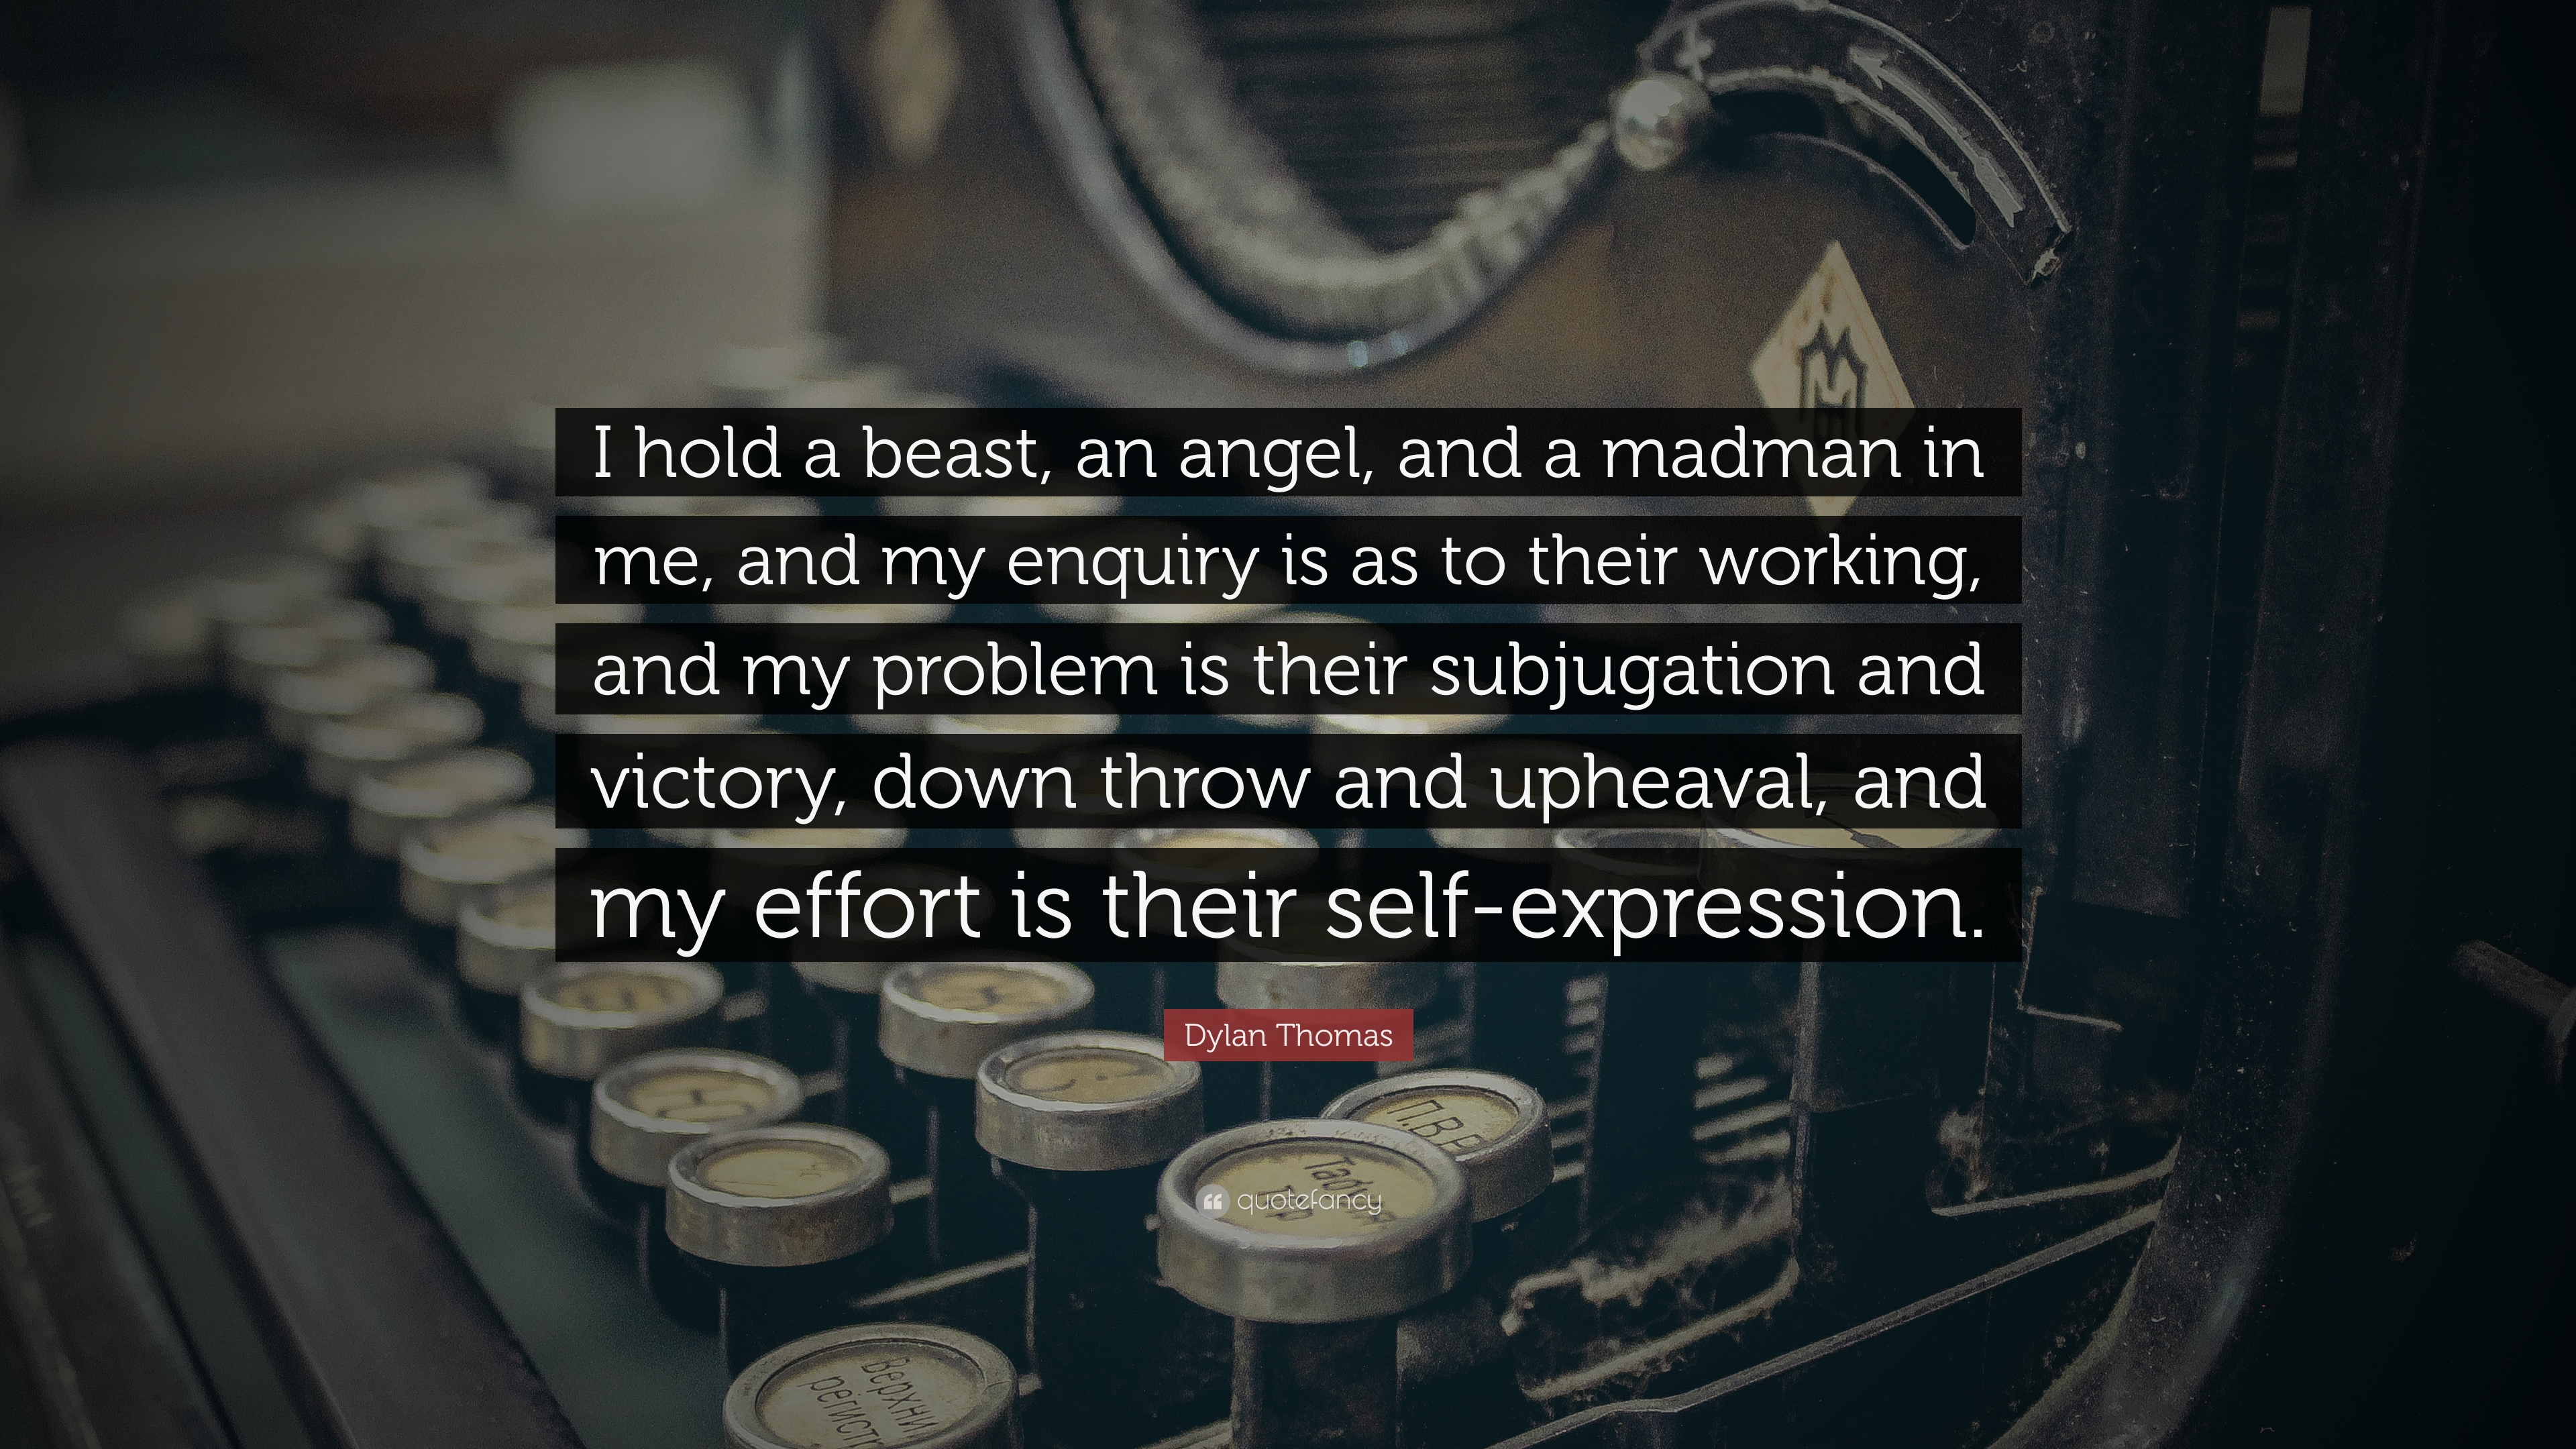 Dylan Thomas Quotes | Dylan Thomas Quote I Hold A Beast An Angel And A Madman In Me